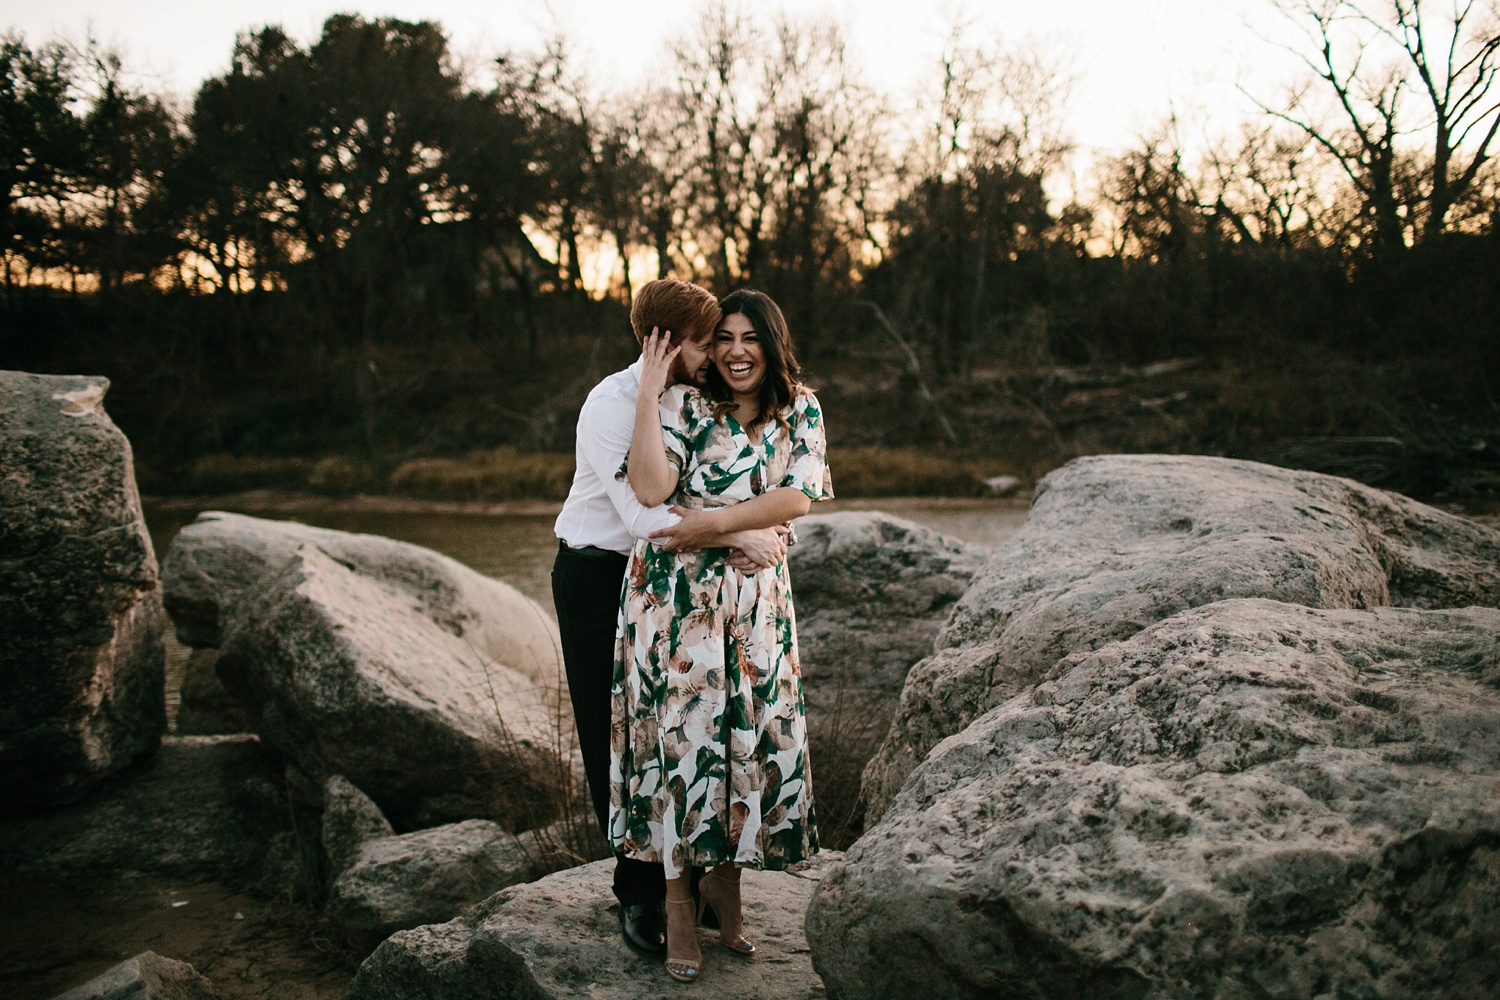 Grant + Lysette - floral dress engagement session by North Texas Wedding Photographer Rachel Meagan Photography102